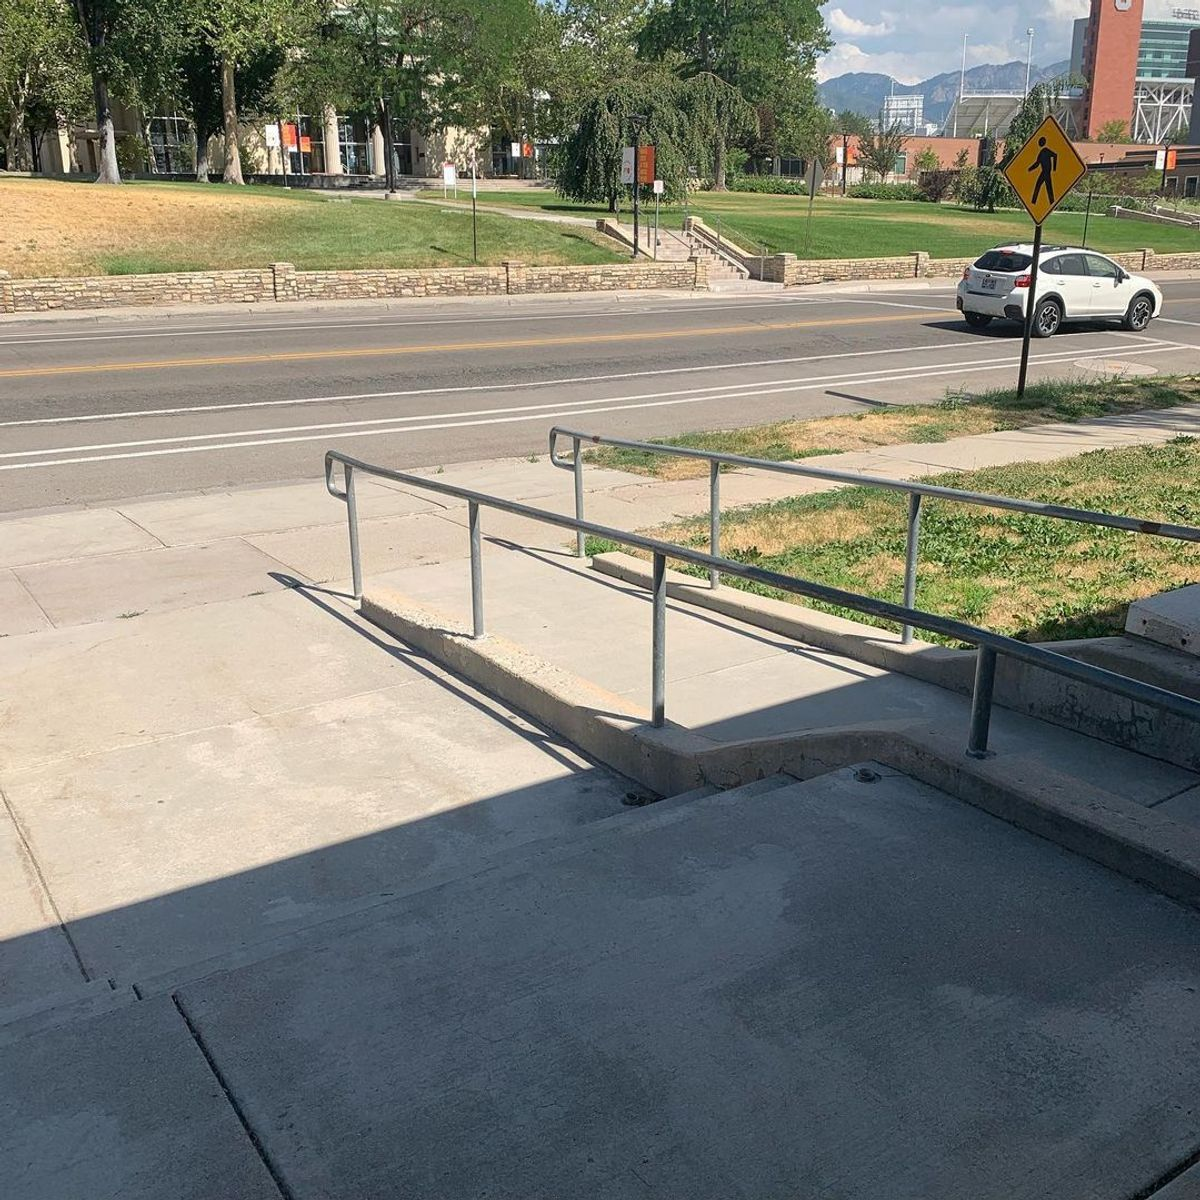 Image for skate spot West Institute - 3 Stair Out Rail